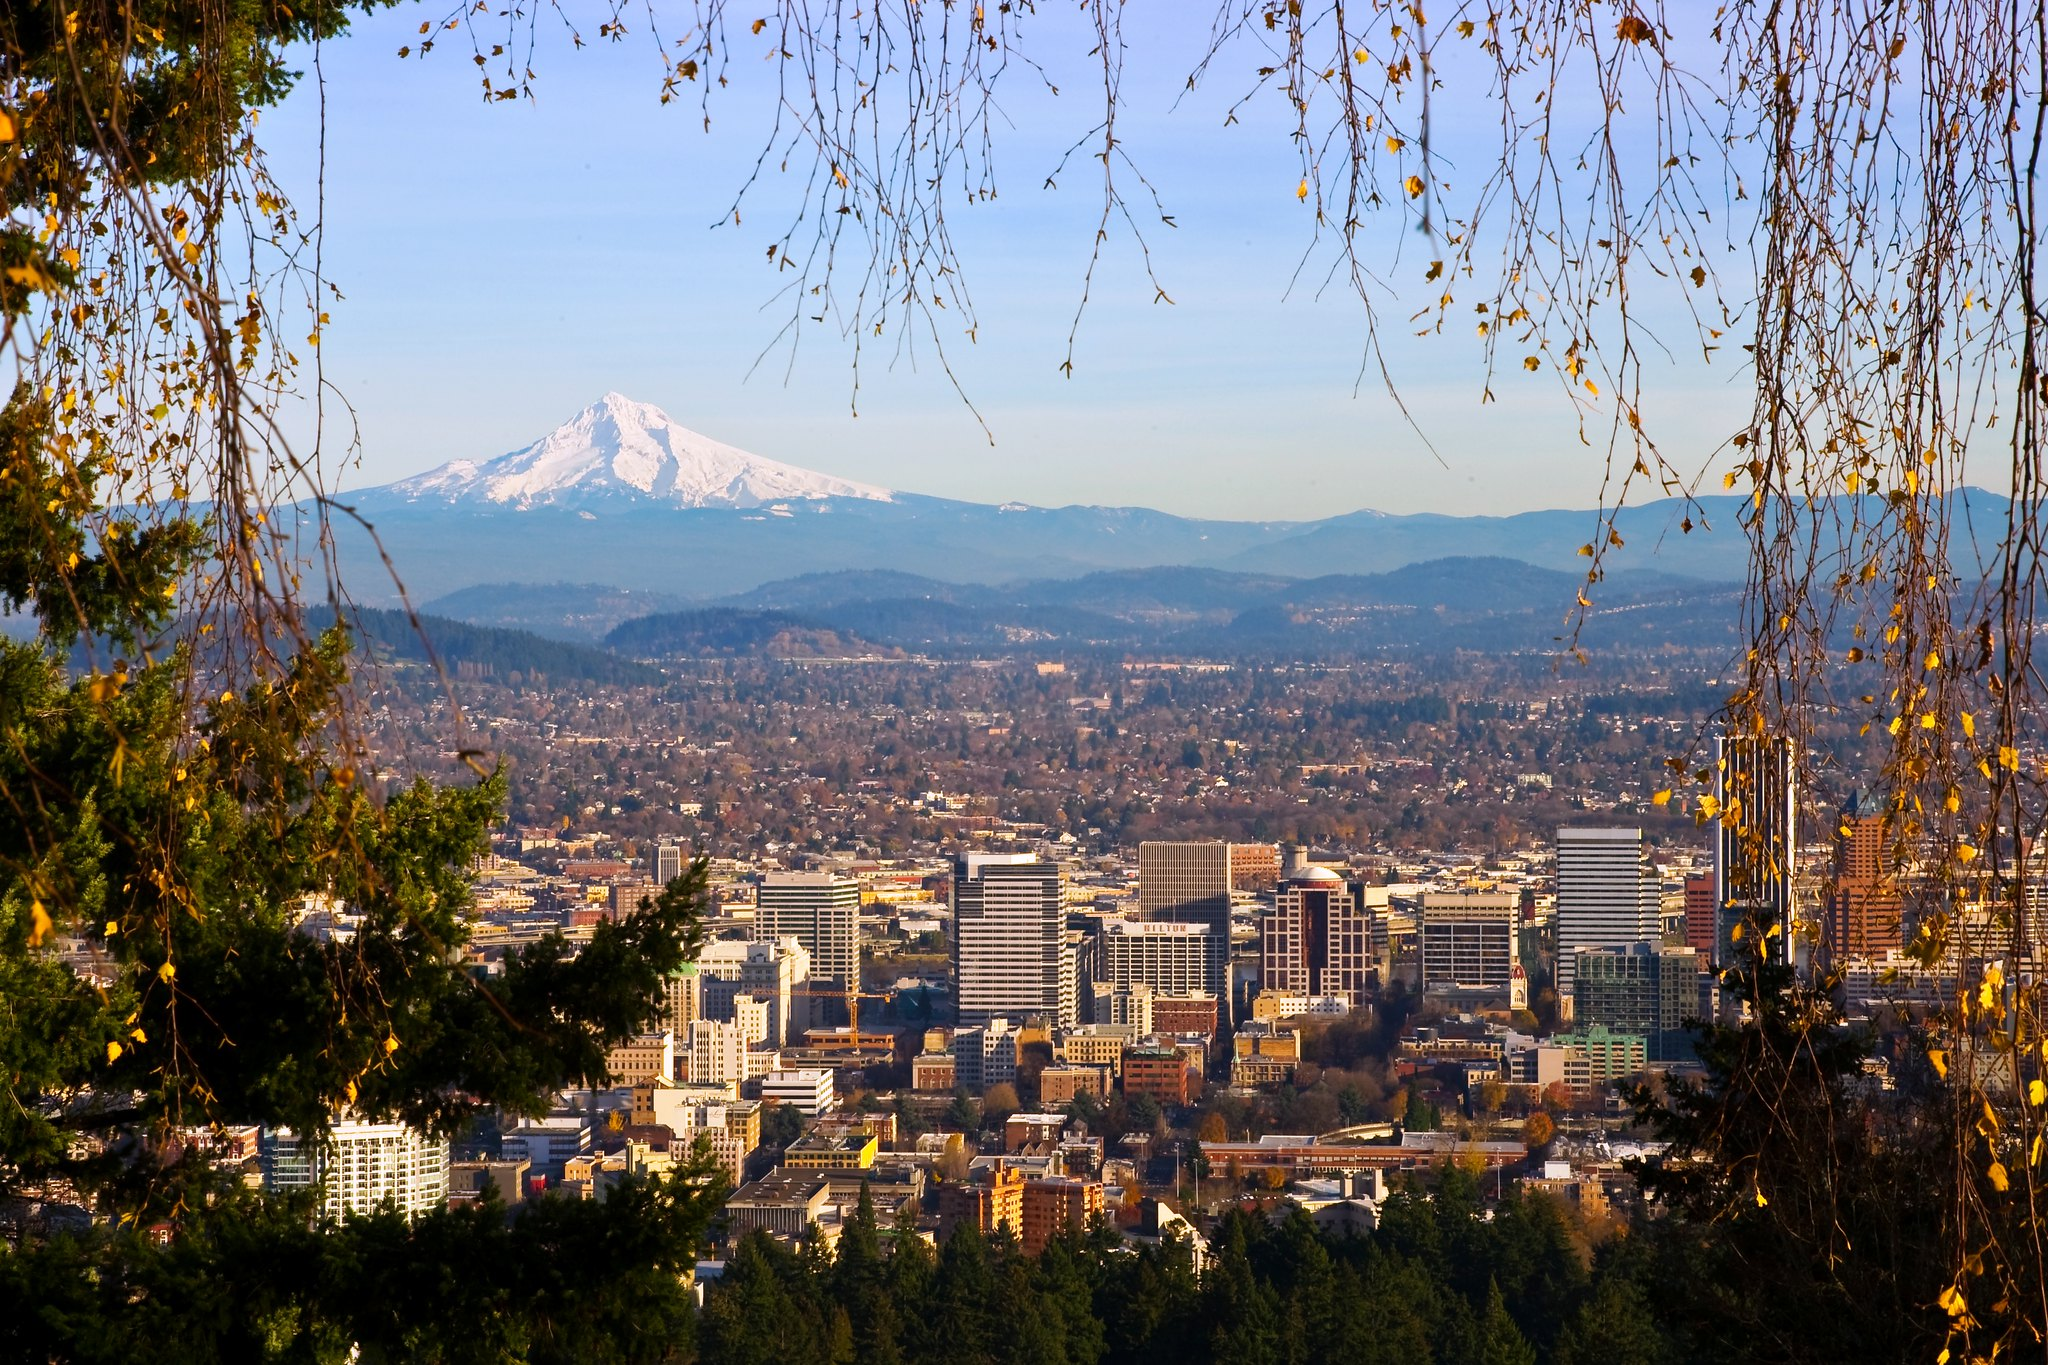 View of Mount Hood from Pittock Mansion